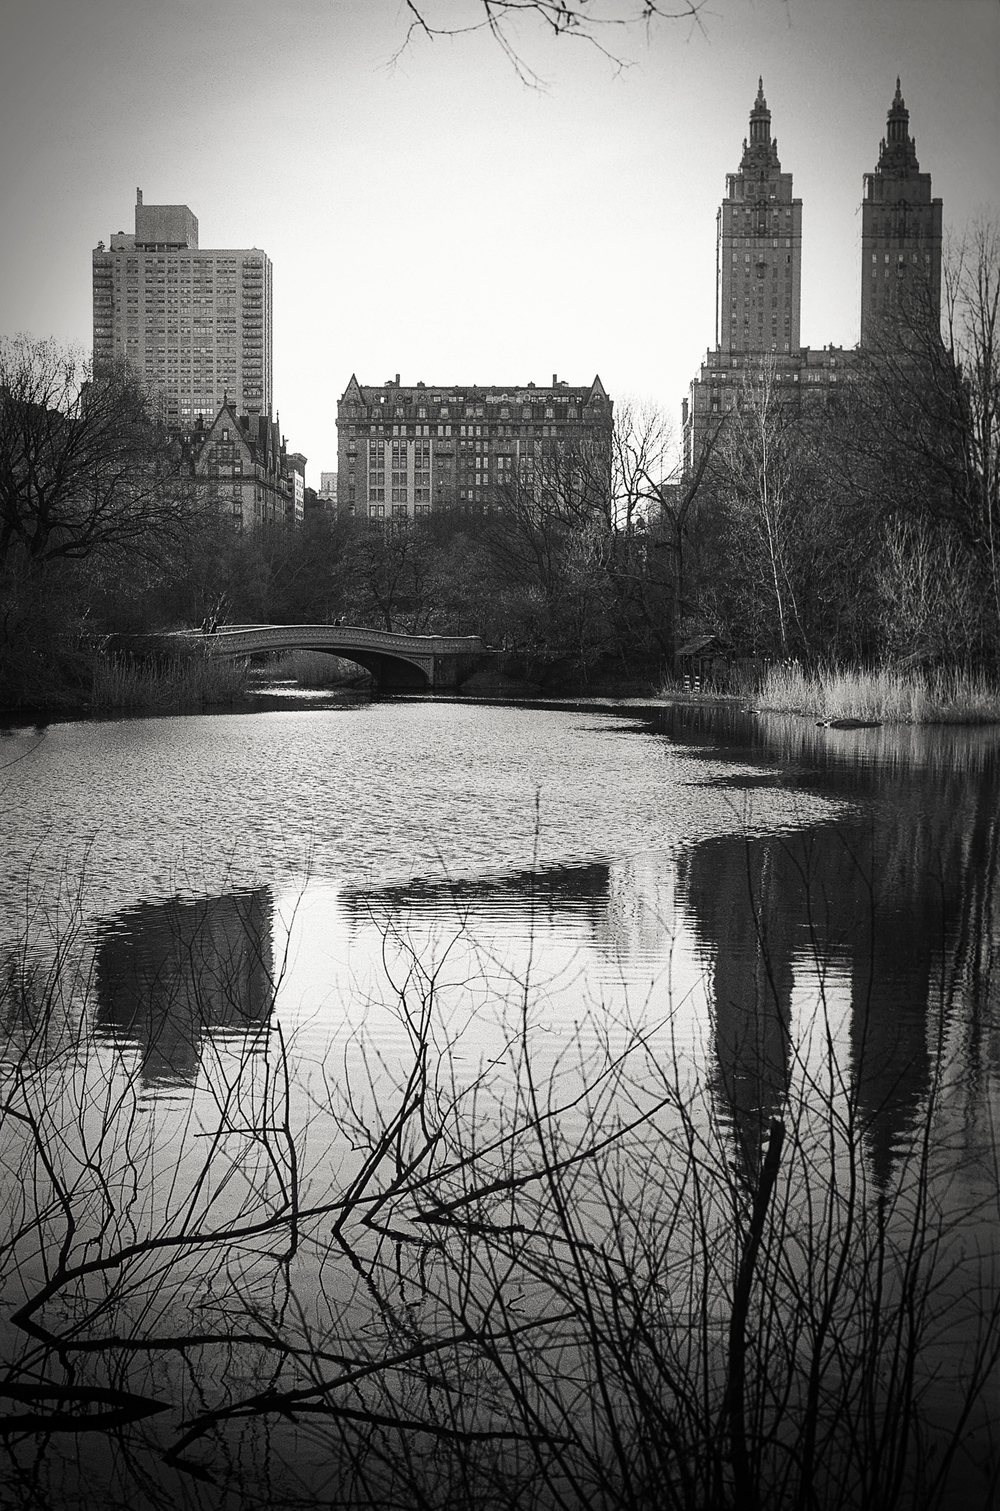 The Ramble and Lake, Central Park, NY 1997.